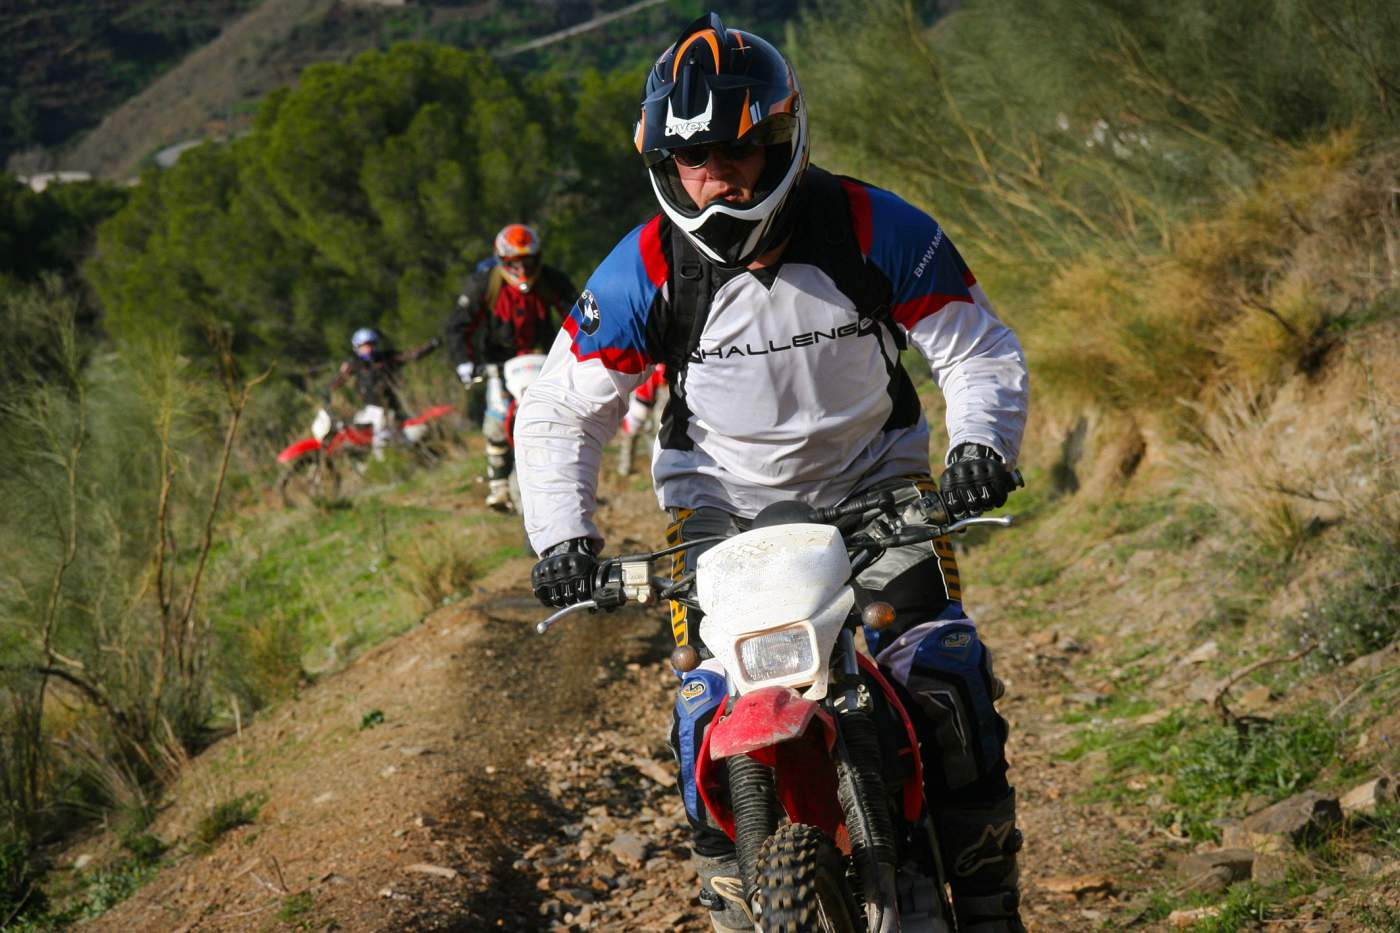 Motorrad Offroad Tour in Spanien - Andalusien